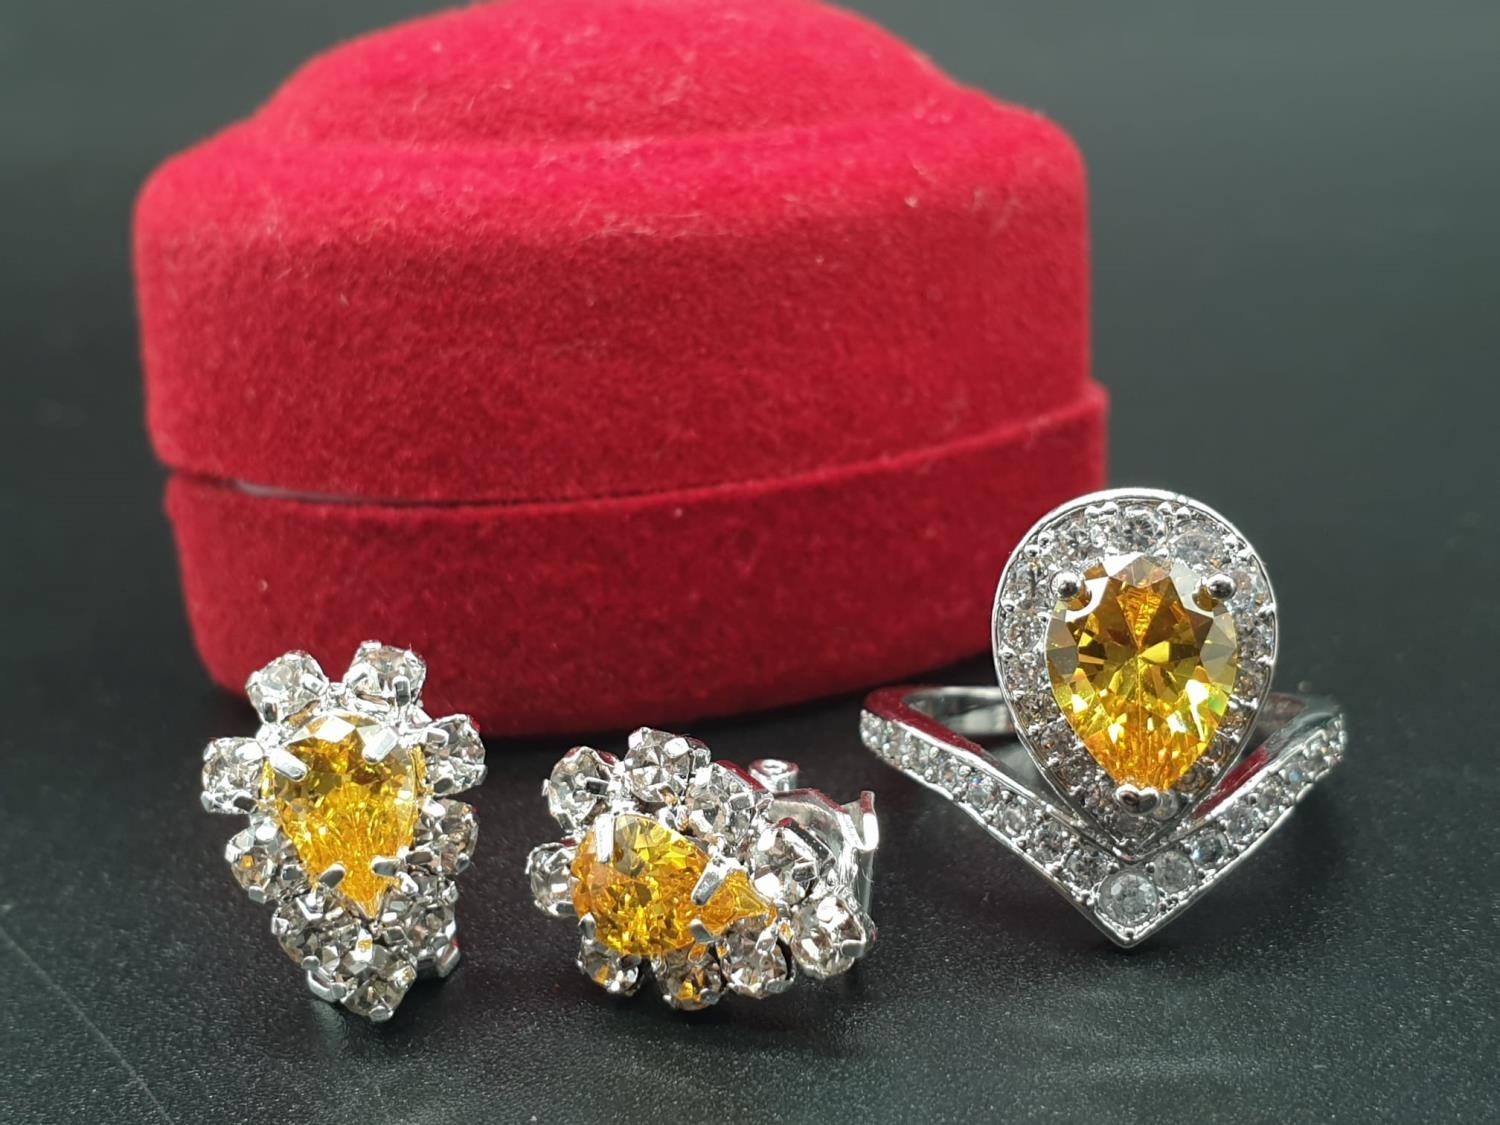 A white metal ring and earrings set with yellow topaz and clear sapphires. Ring size: N. Presented